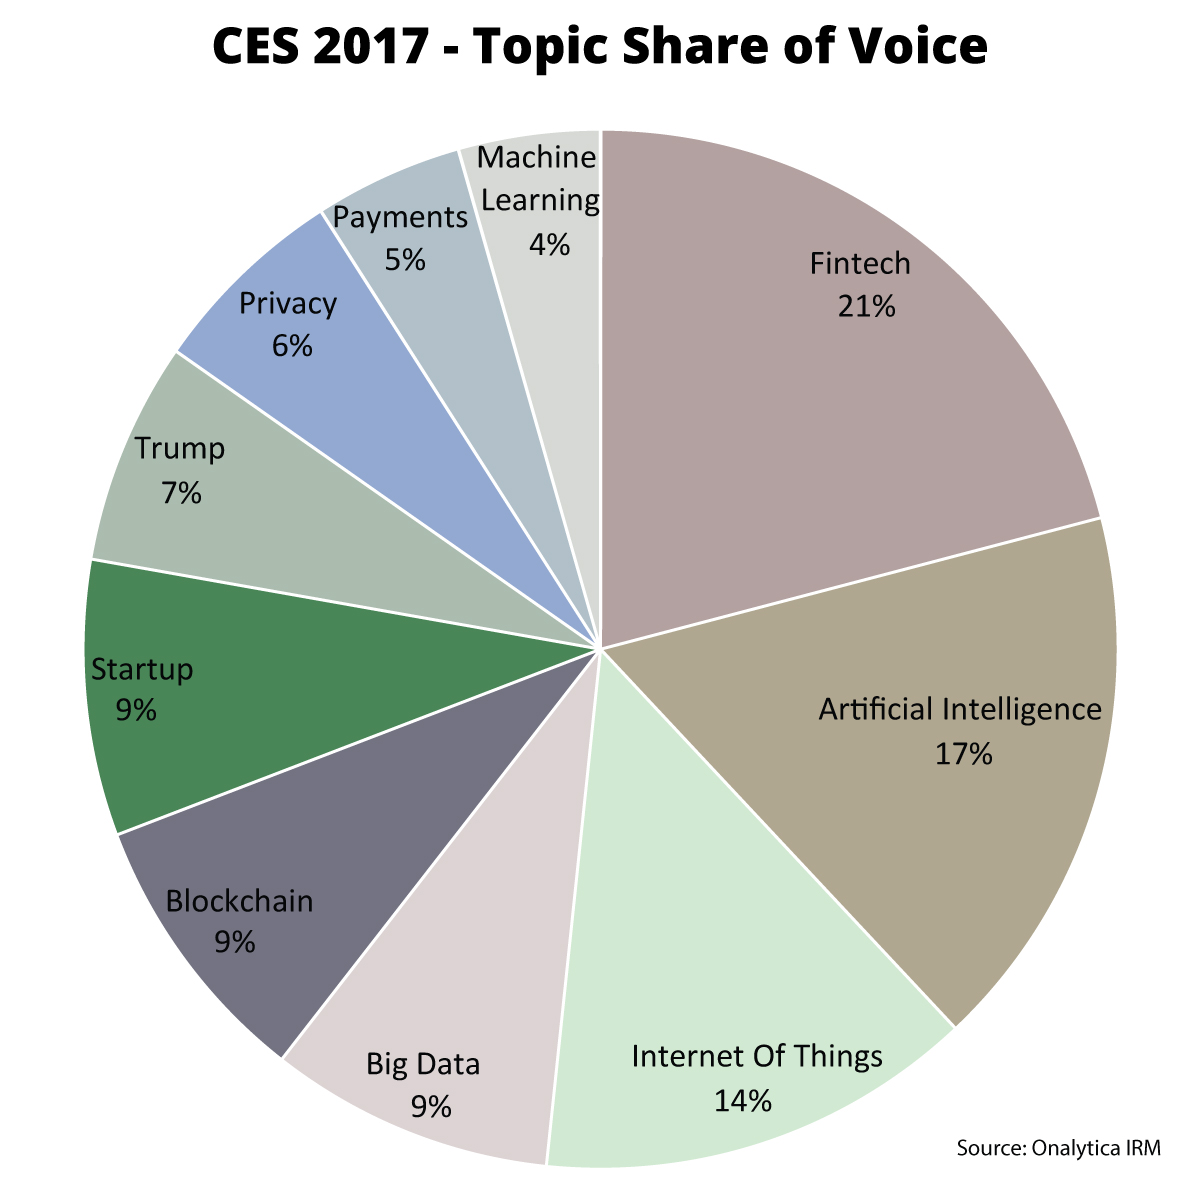 Onalytica CES 2017 Top 100 Influencers and Brands Topic Share of Voice